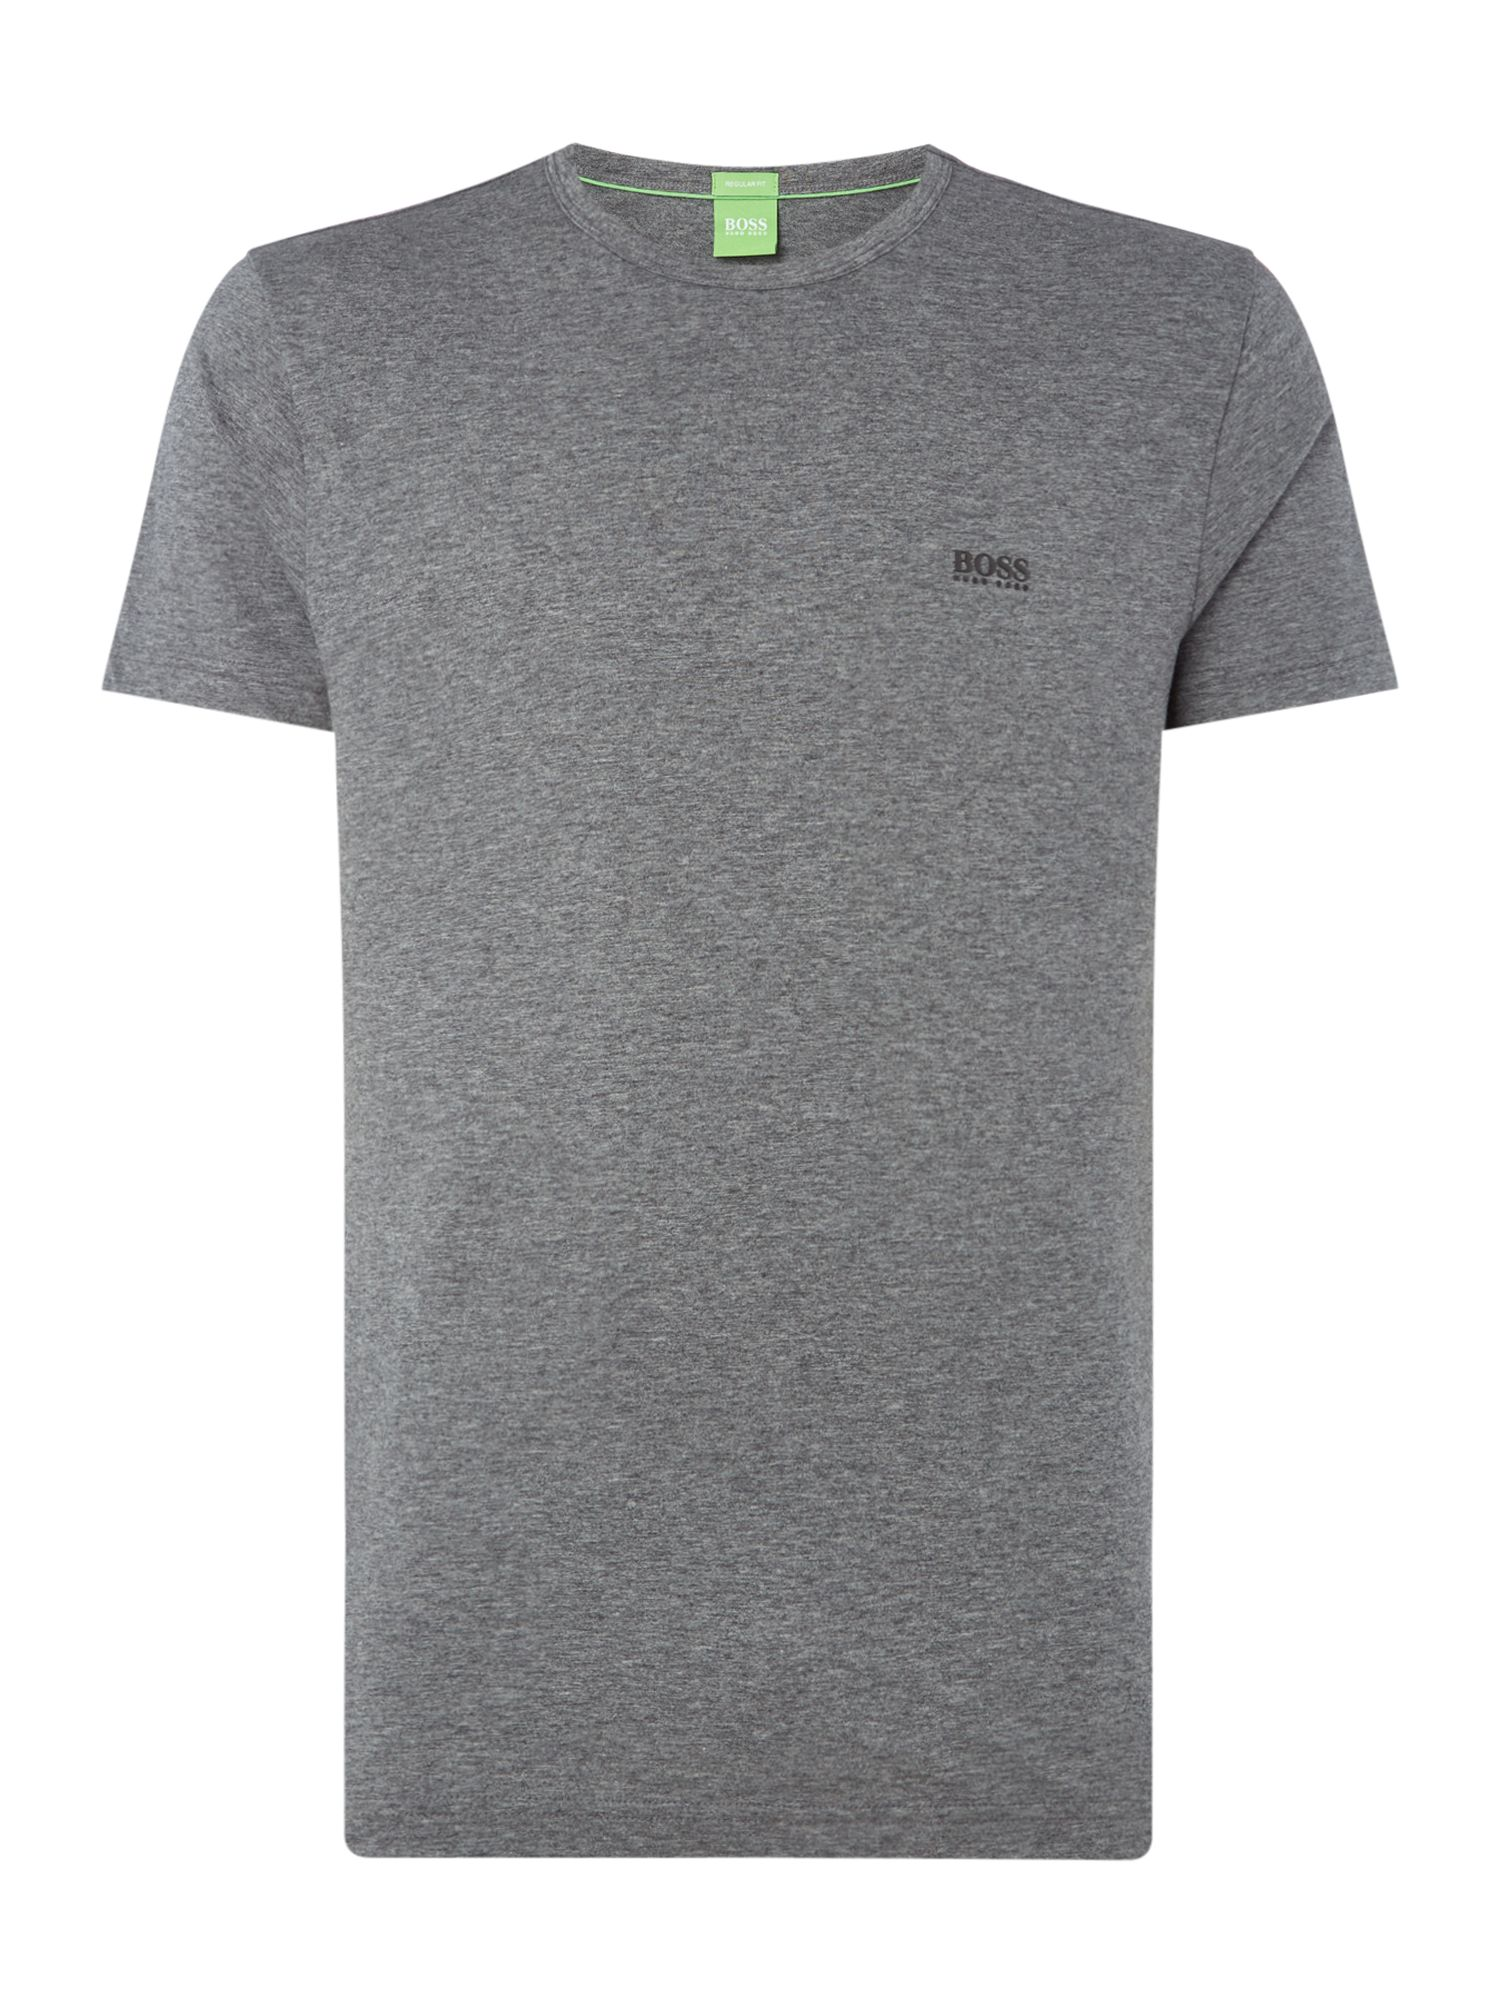 Men's Hugo Boss Basic logo crew neck tee, Grey Marl